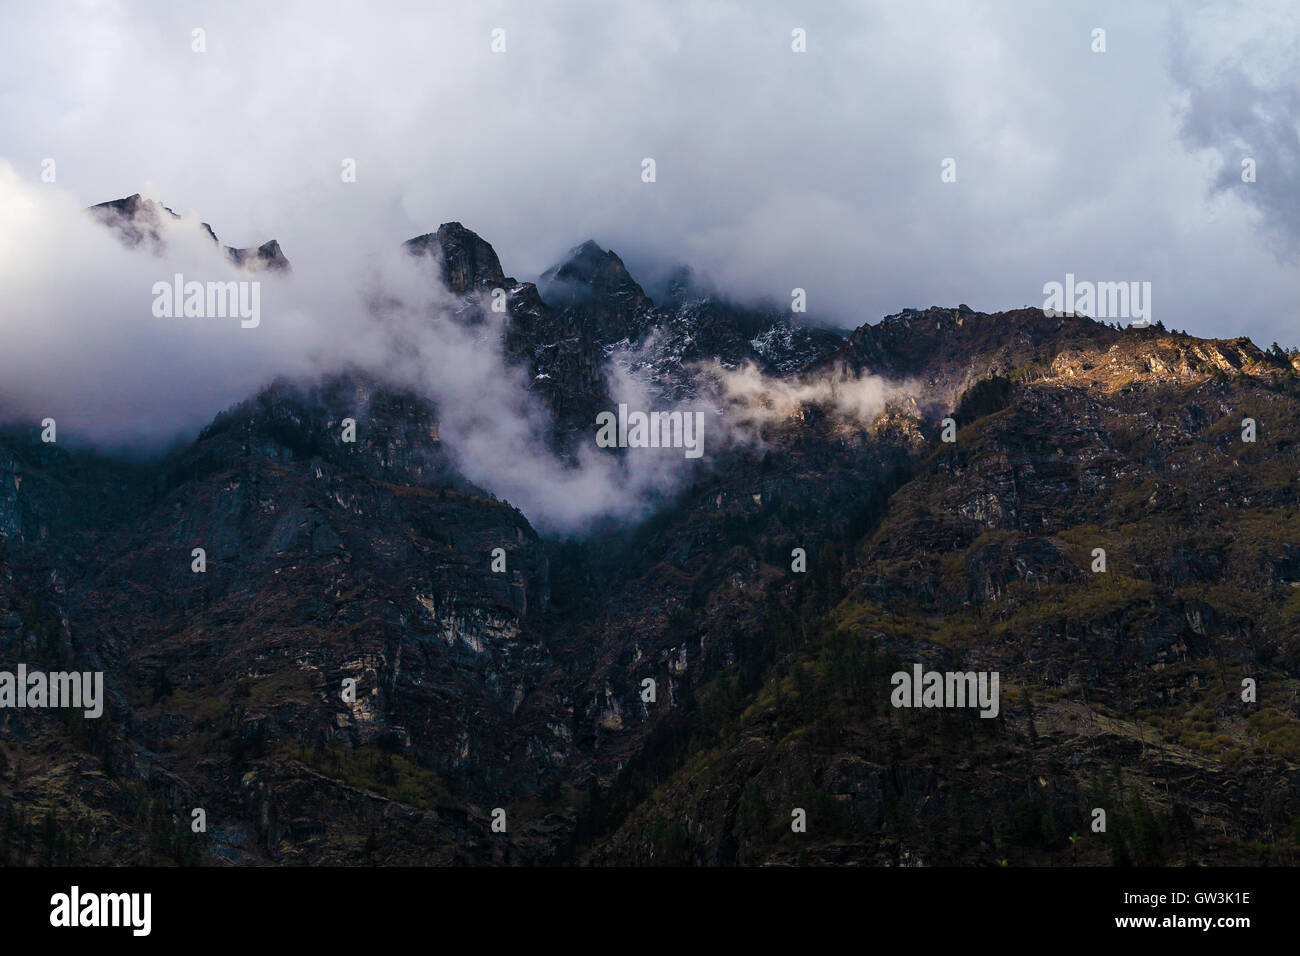 Landscapes Mountains Nature Morning Viewpoint.Mountain Trekking Landscape Background. Nobody photo. Horizontal picture. - Stock Image